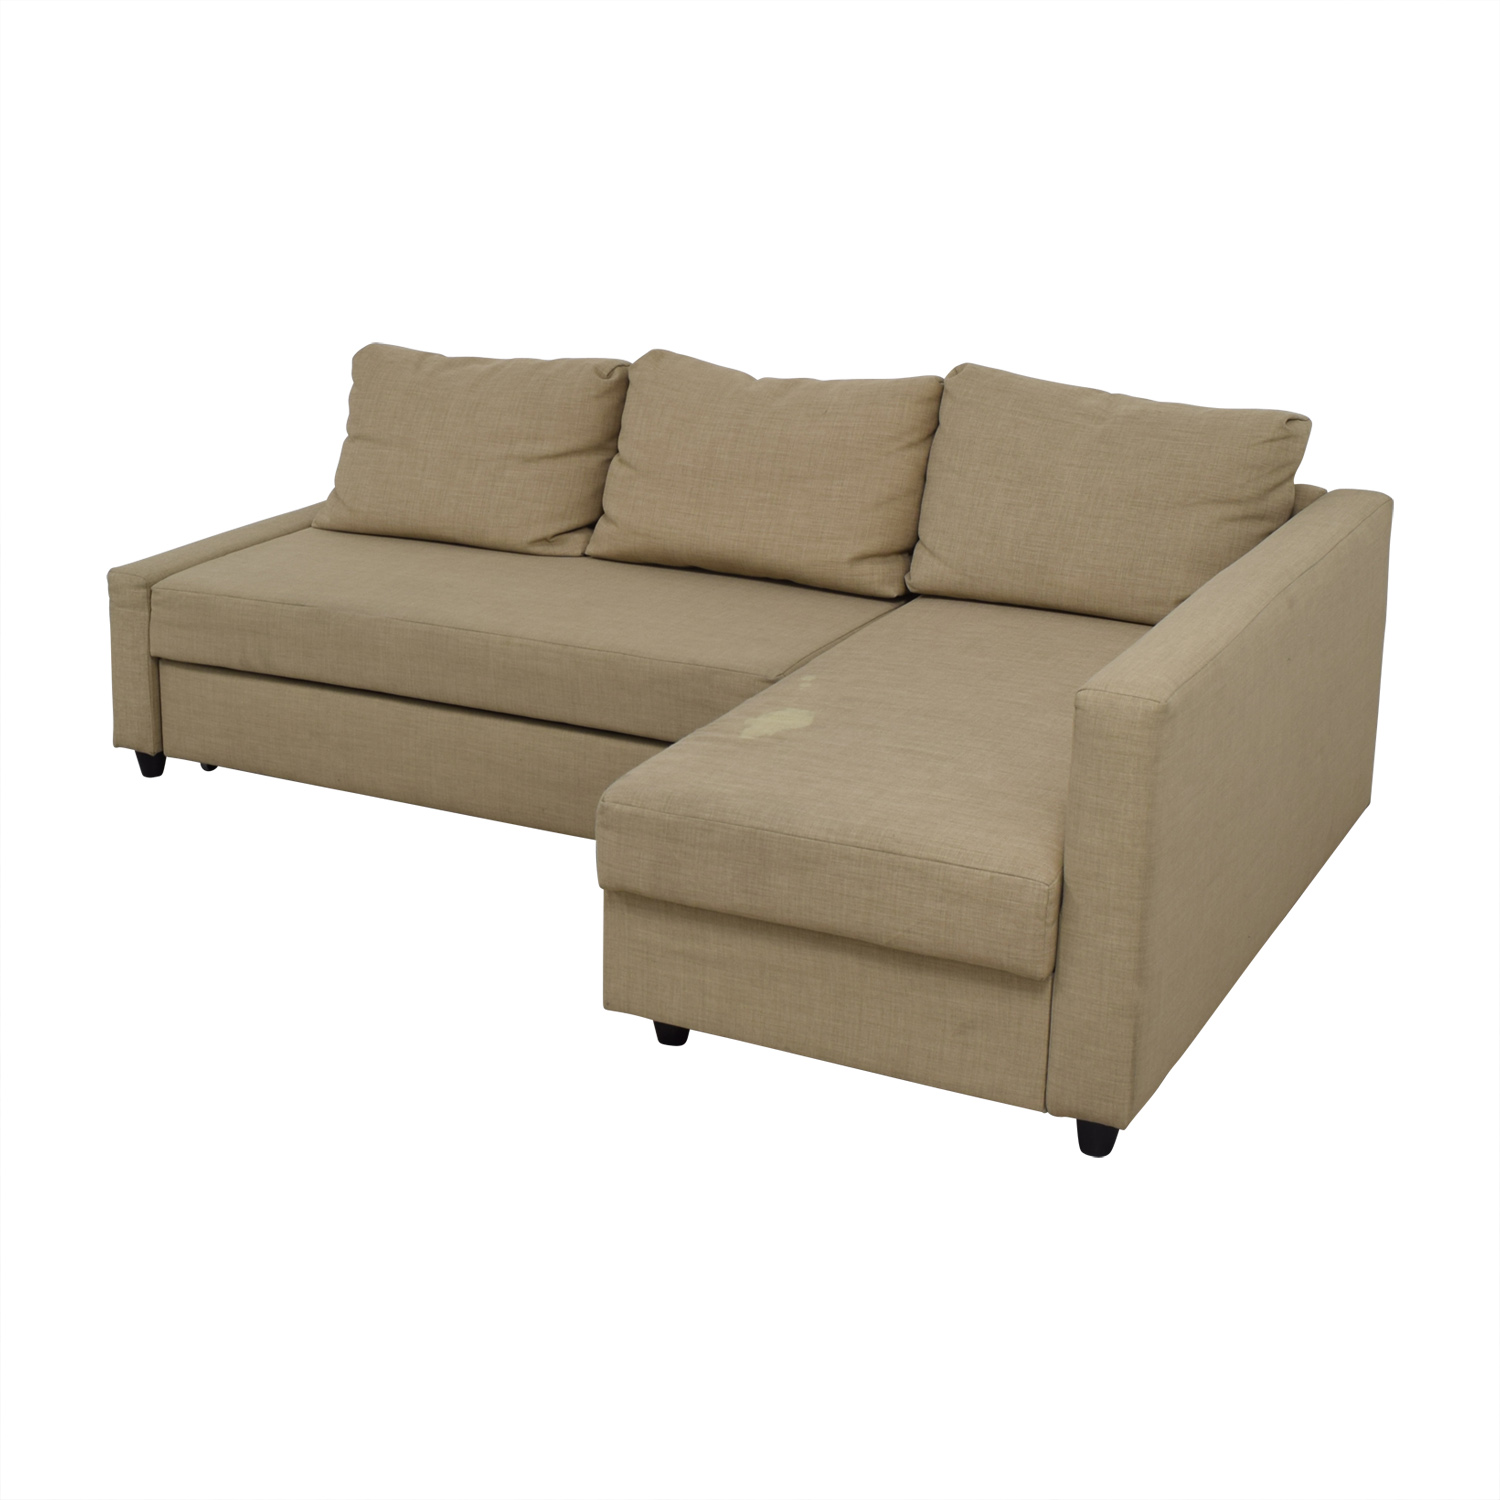 Sofas Ikea Friheten Tan Sleeper Sectional Second Hand